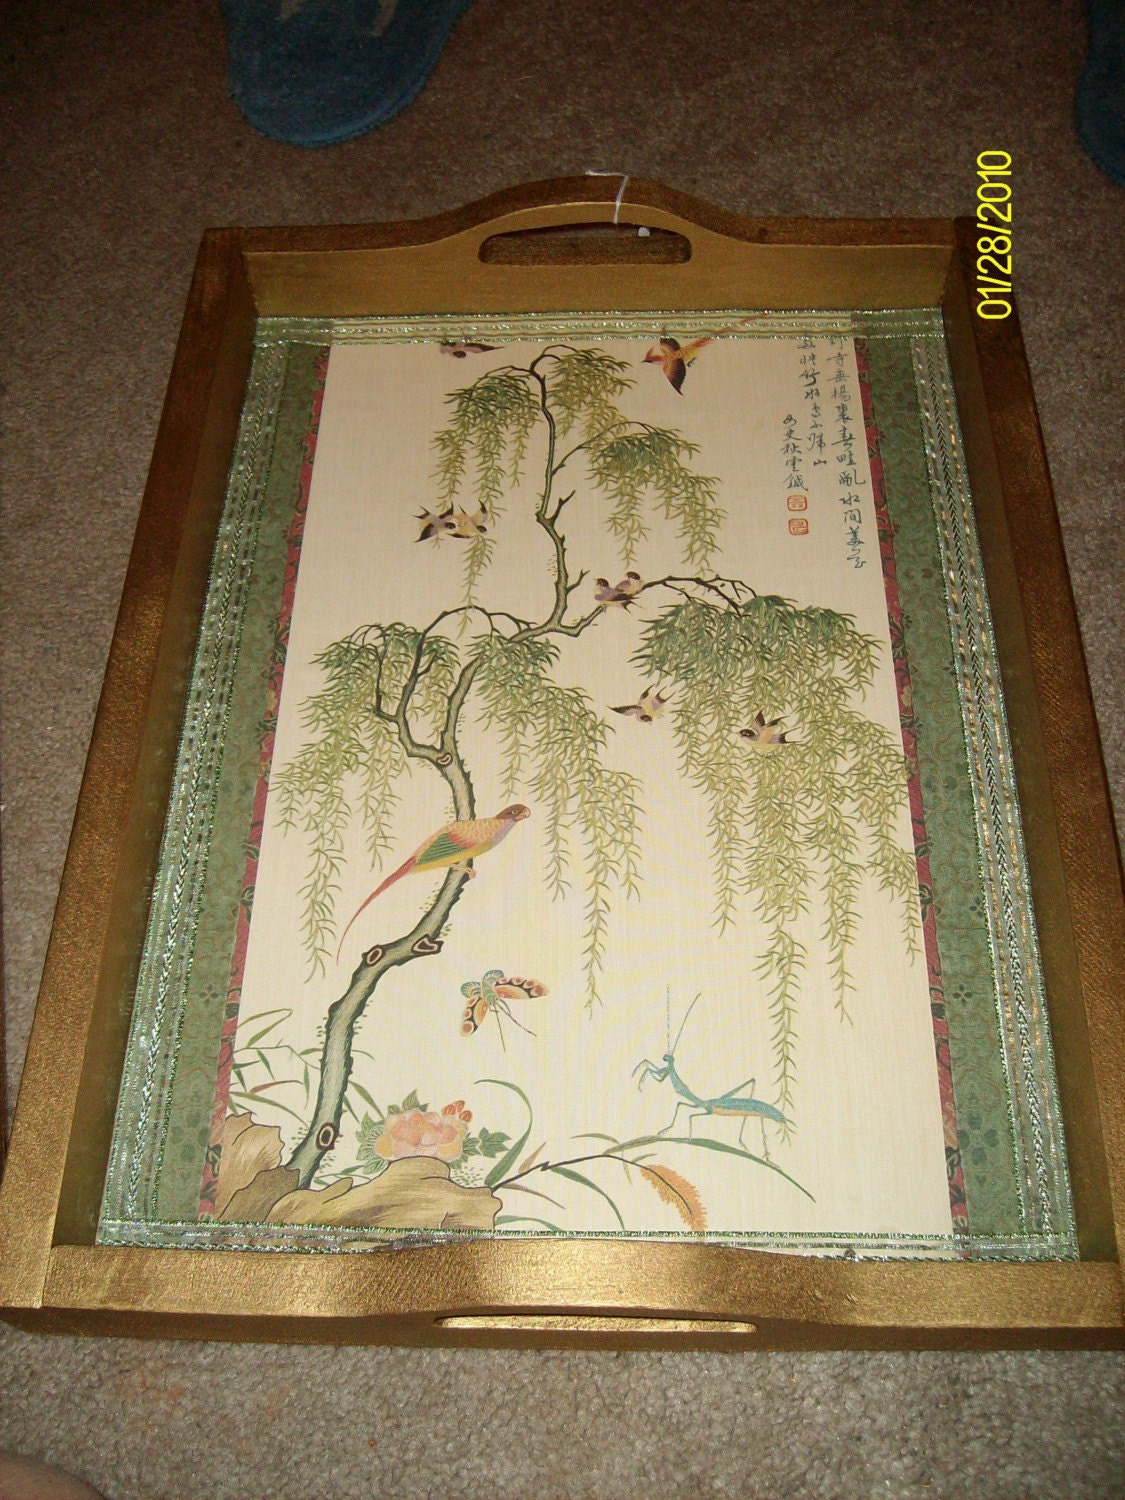 This is a beautiful wooden tray that has been painted gold and has an oriental design wallpaper on the bottom. I bought this tray at a yard sale and painted